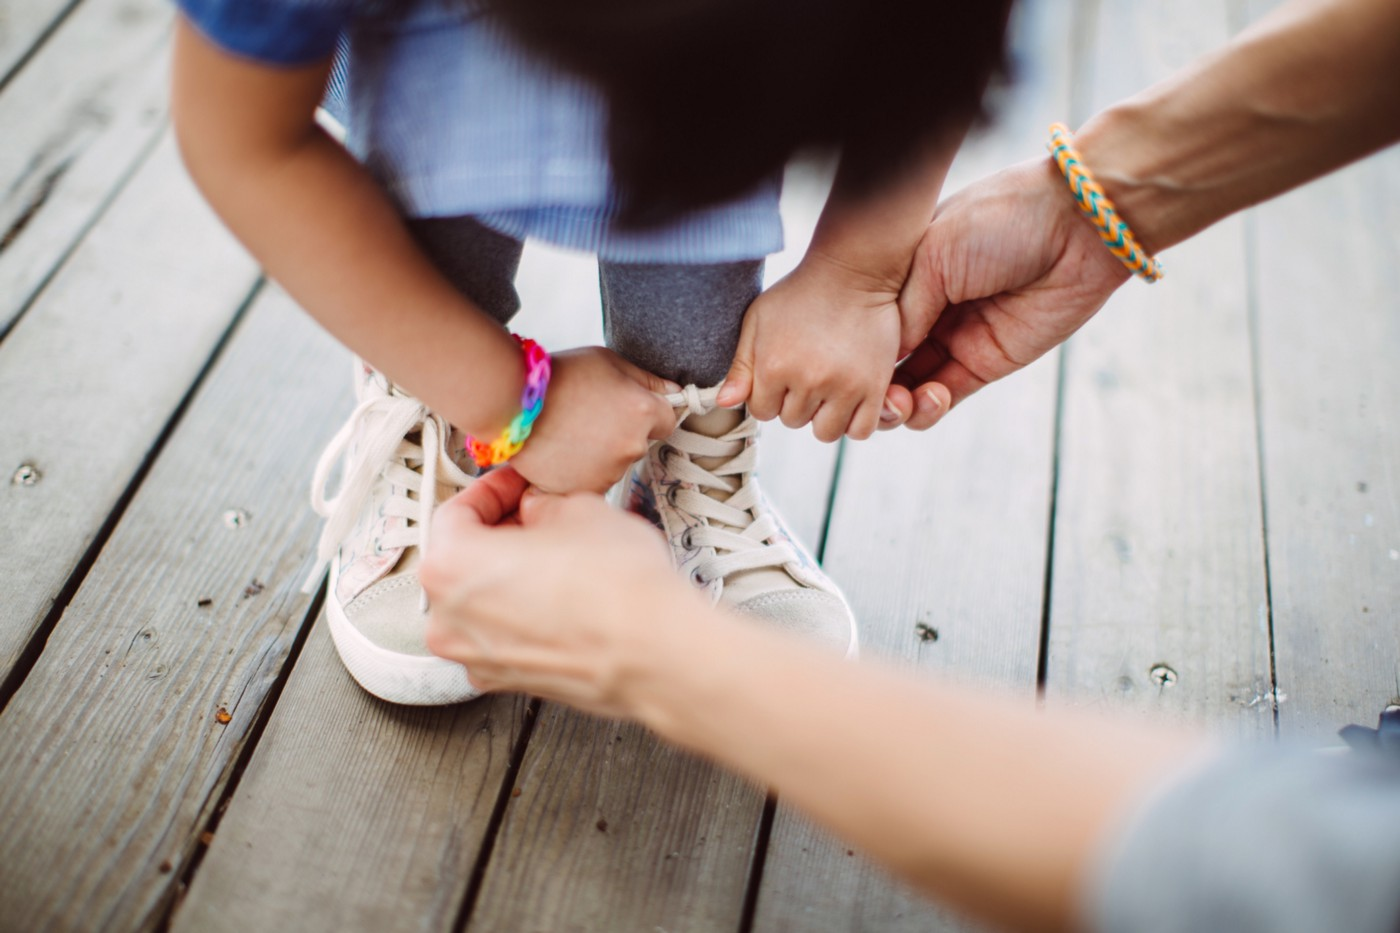 A parent helps a child tie their shoelaces.